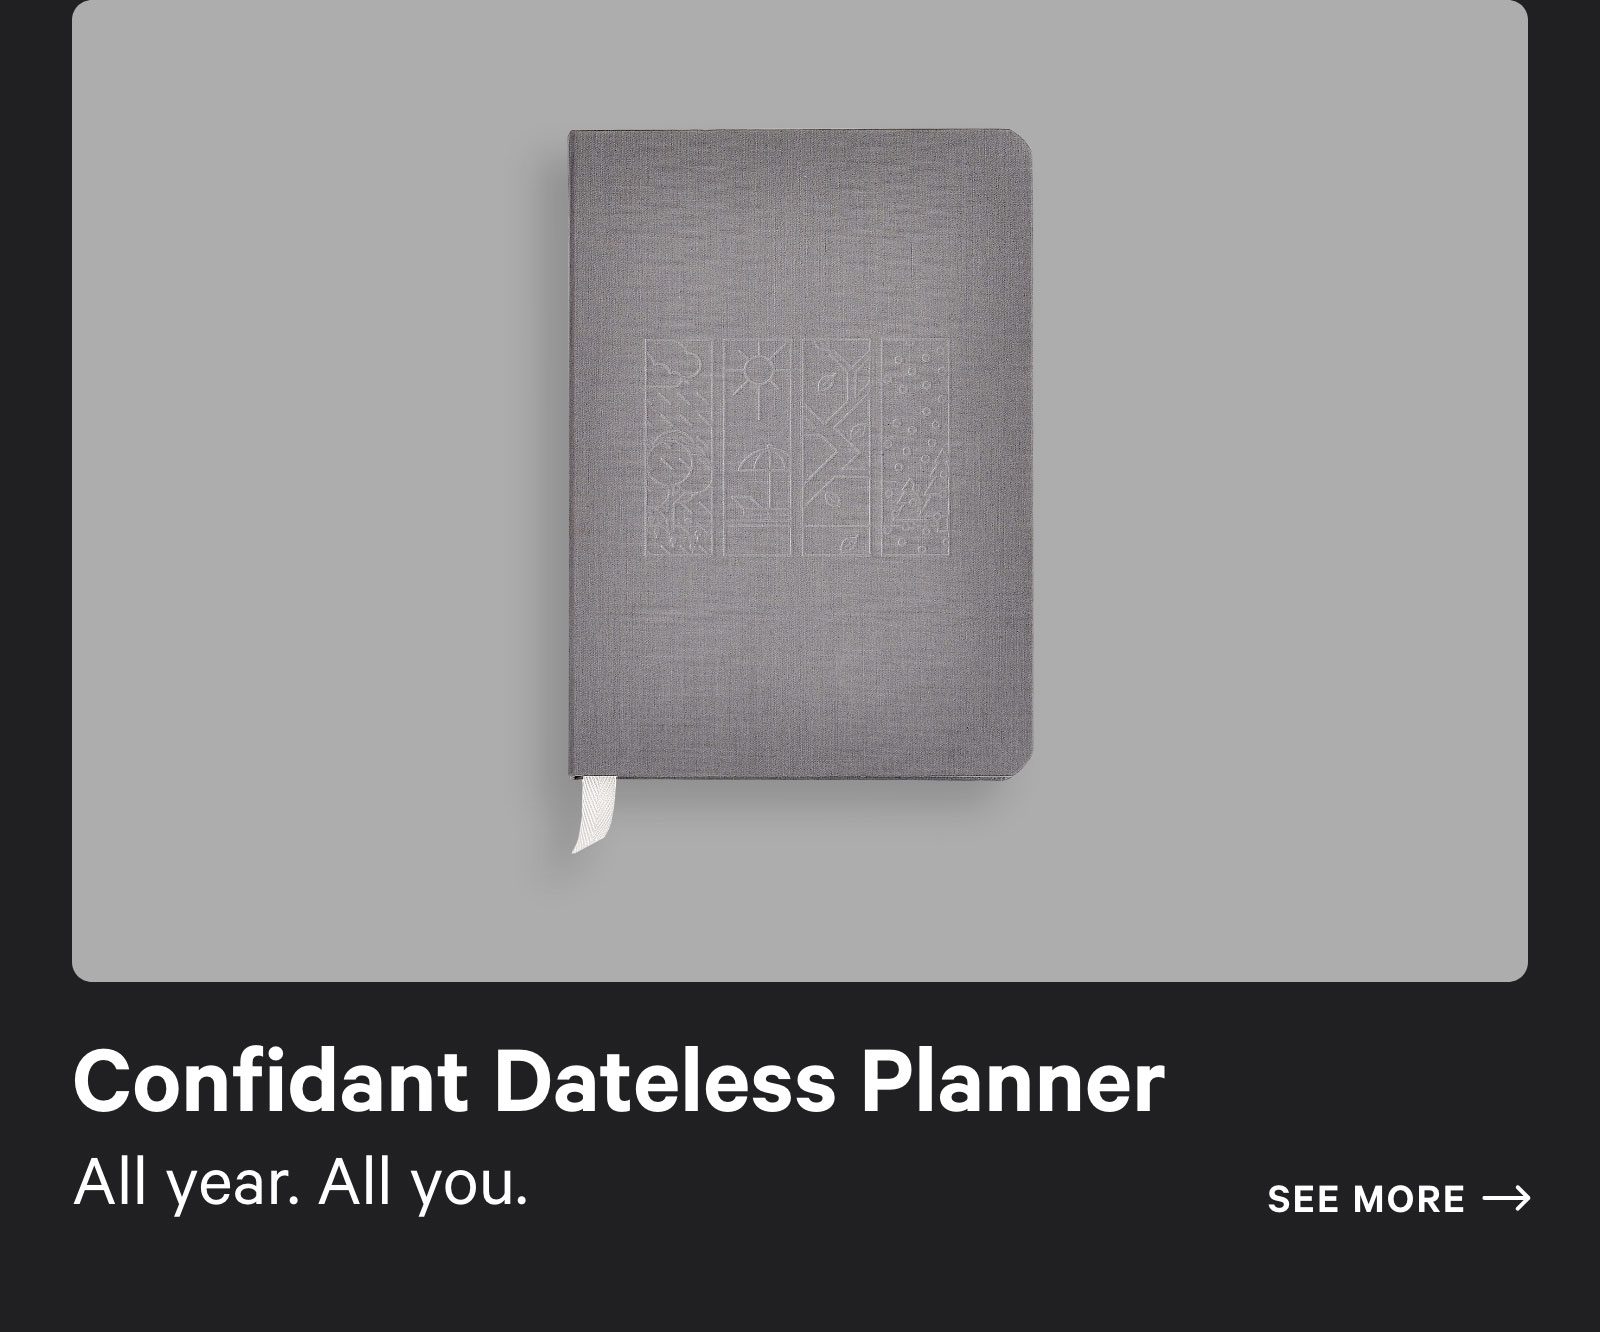 Confidant Dateless Planner. All year. All you. See more ?